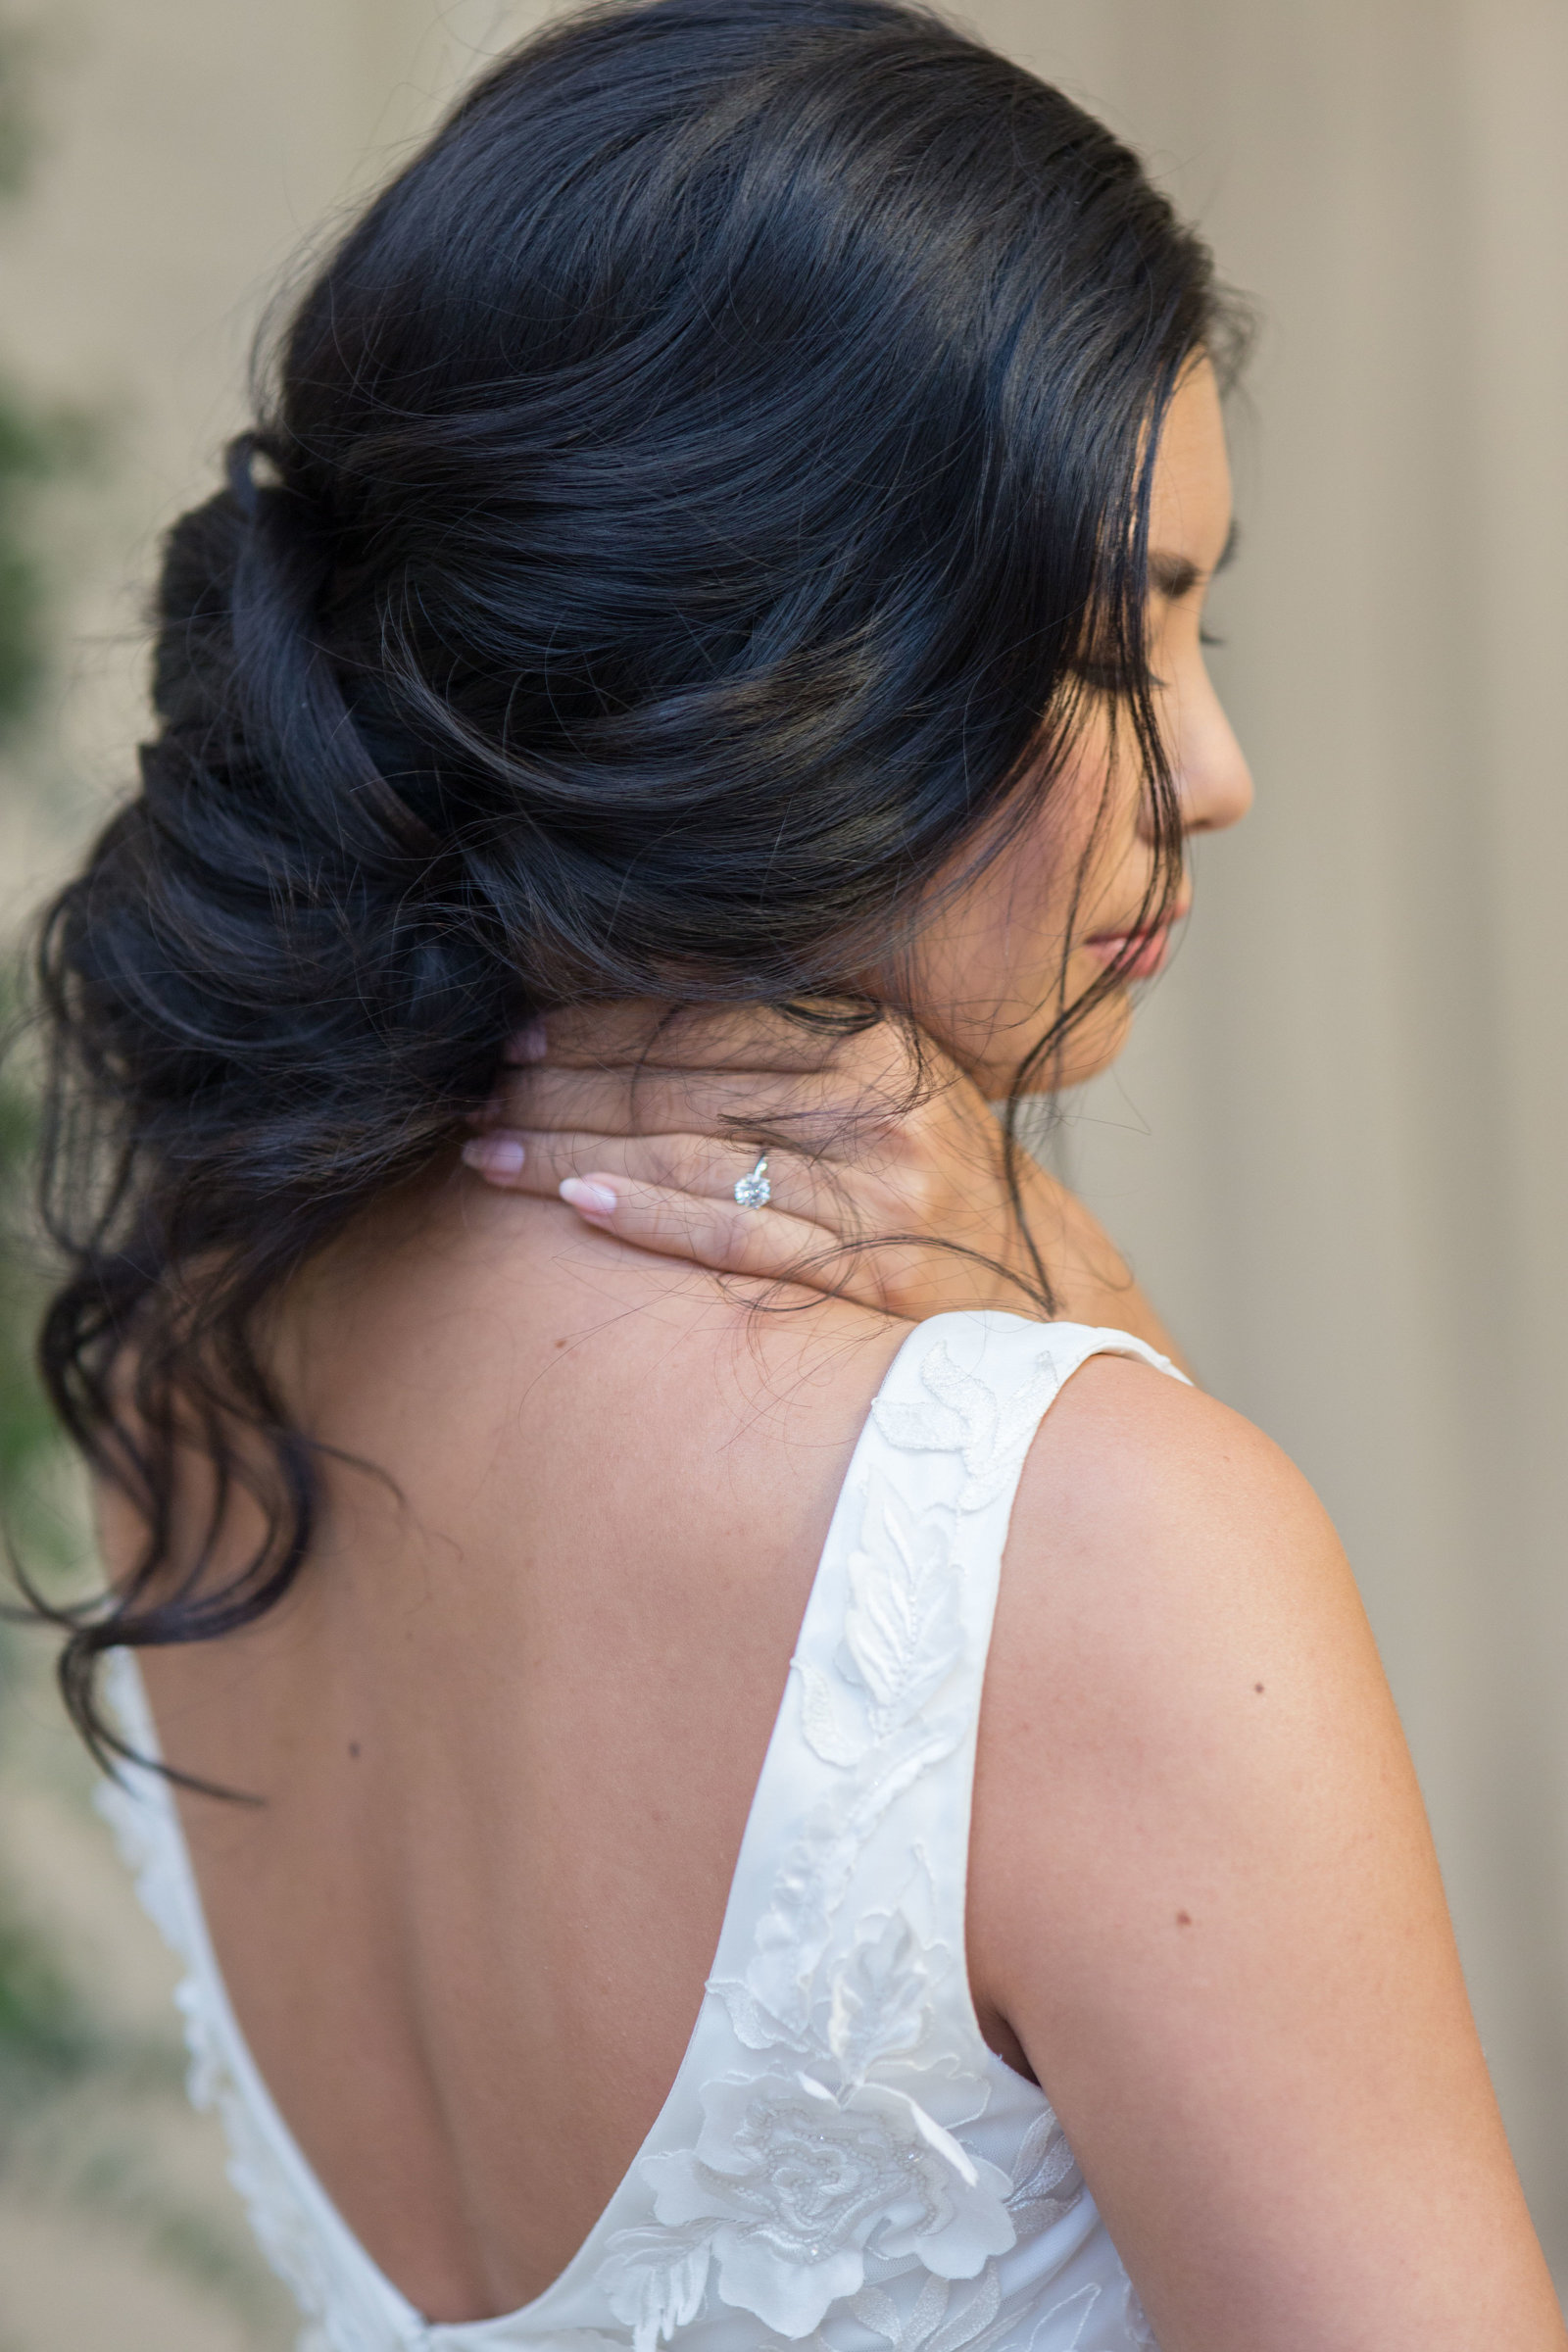 Anaheim-packing-district-wedding-cooks-chapel-photos-by-kelly-h-photo